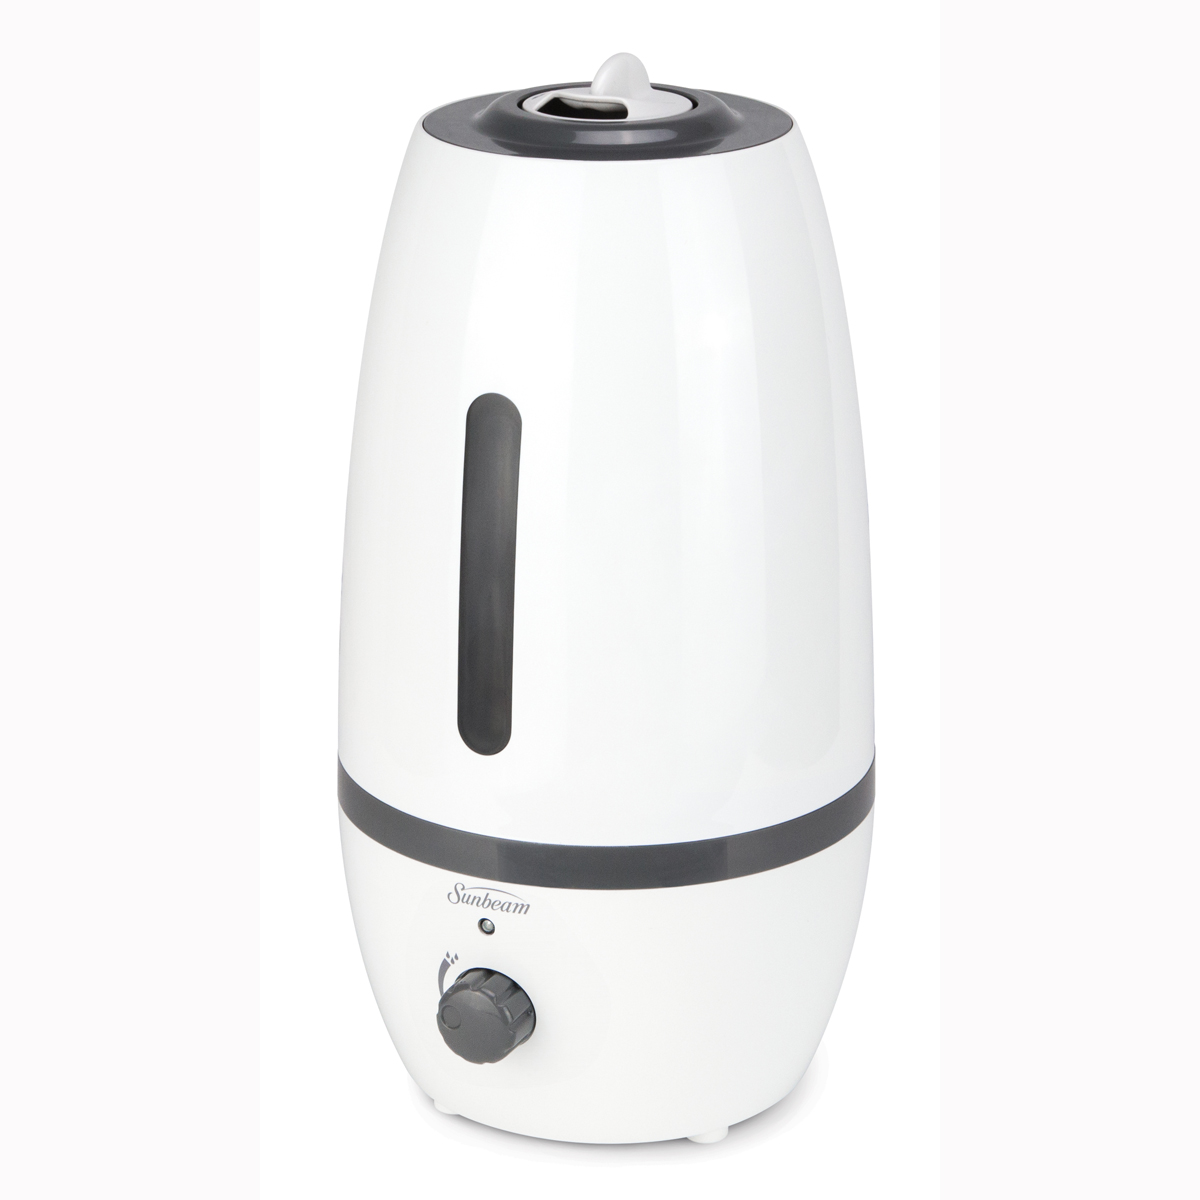 sunbeam ultrasonic cool mist humidifier white sul1410. Black Bedroom Furniture Sets. Home Design Ideas